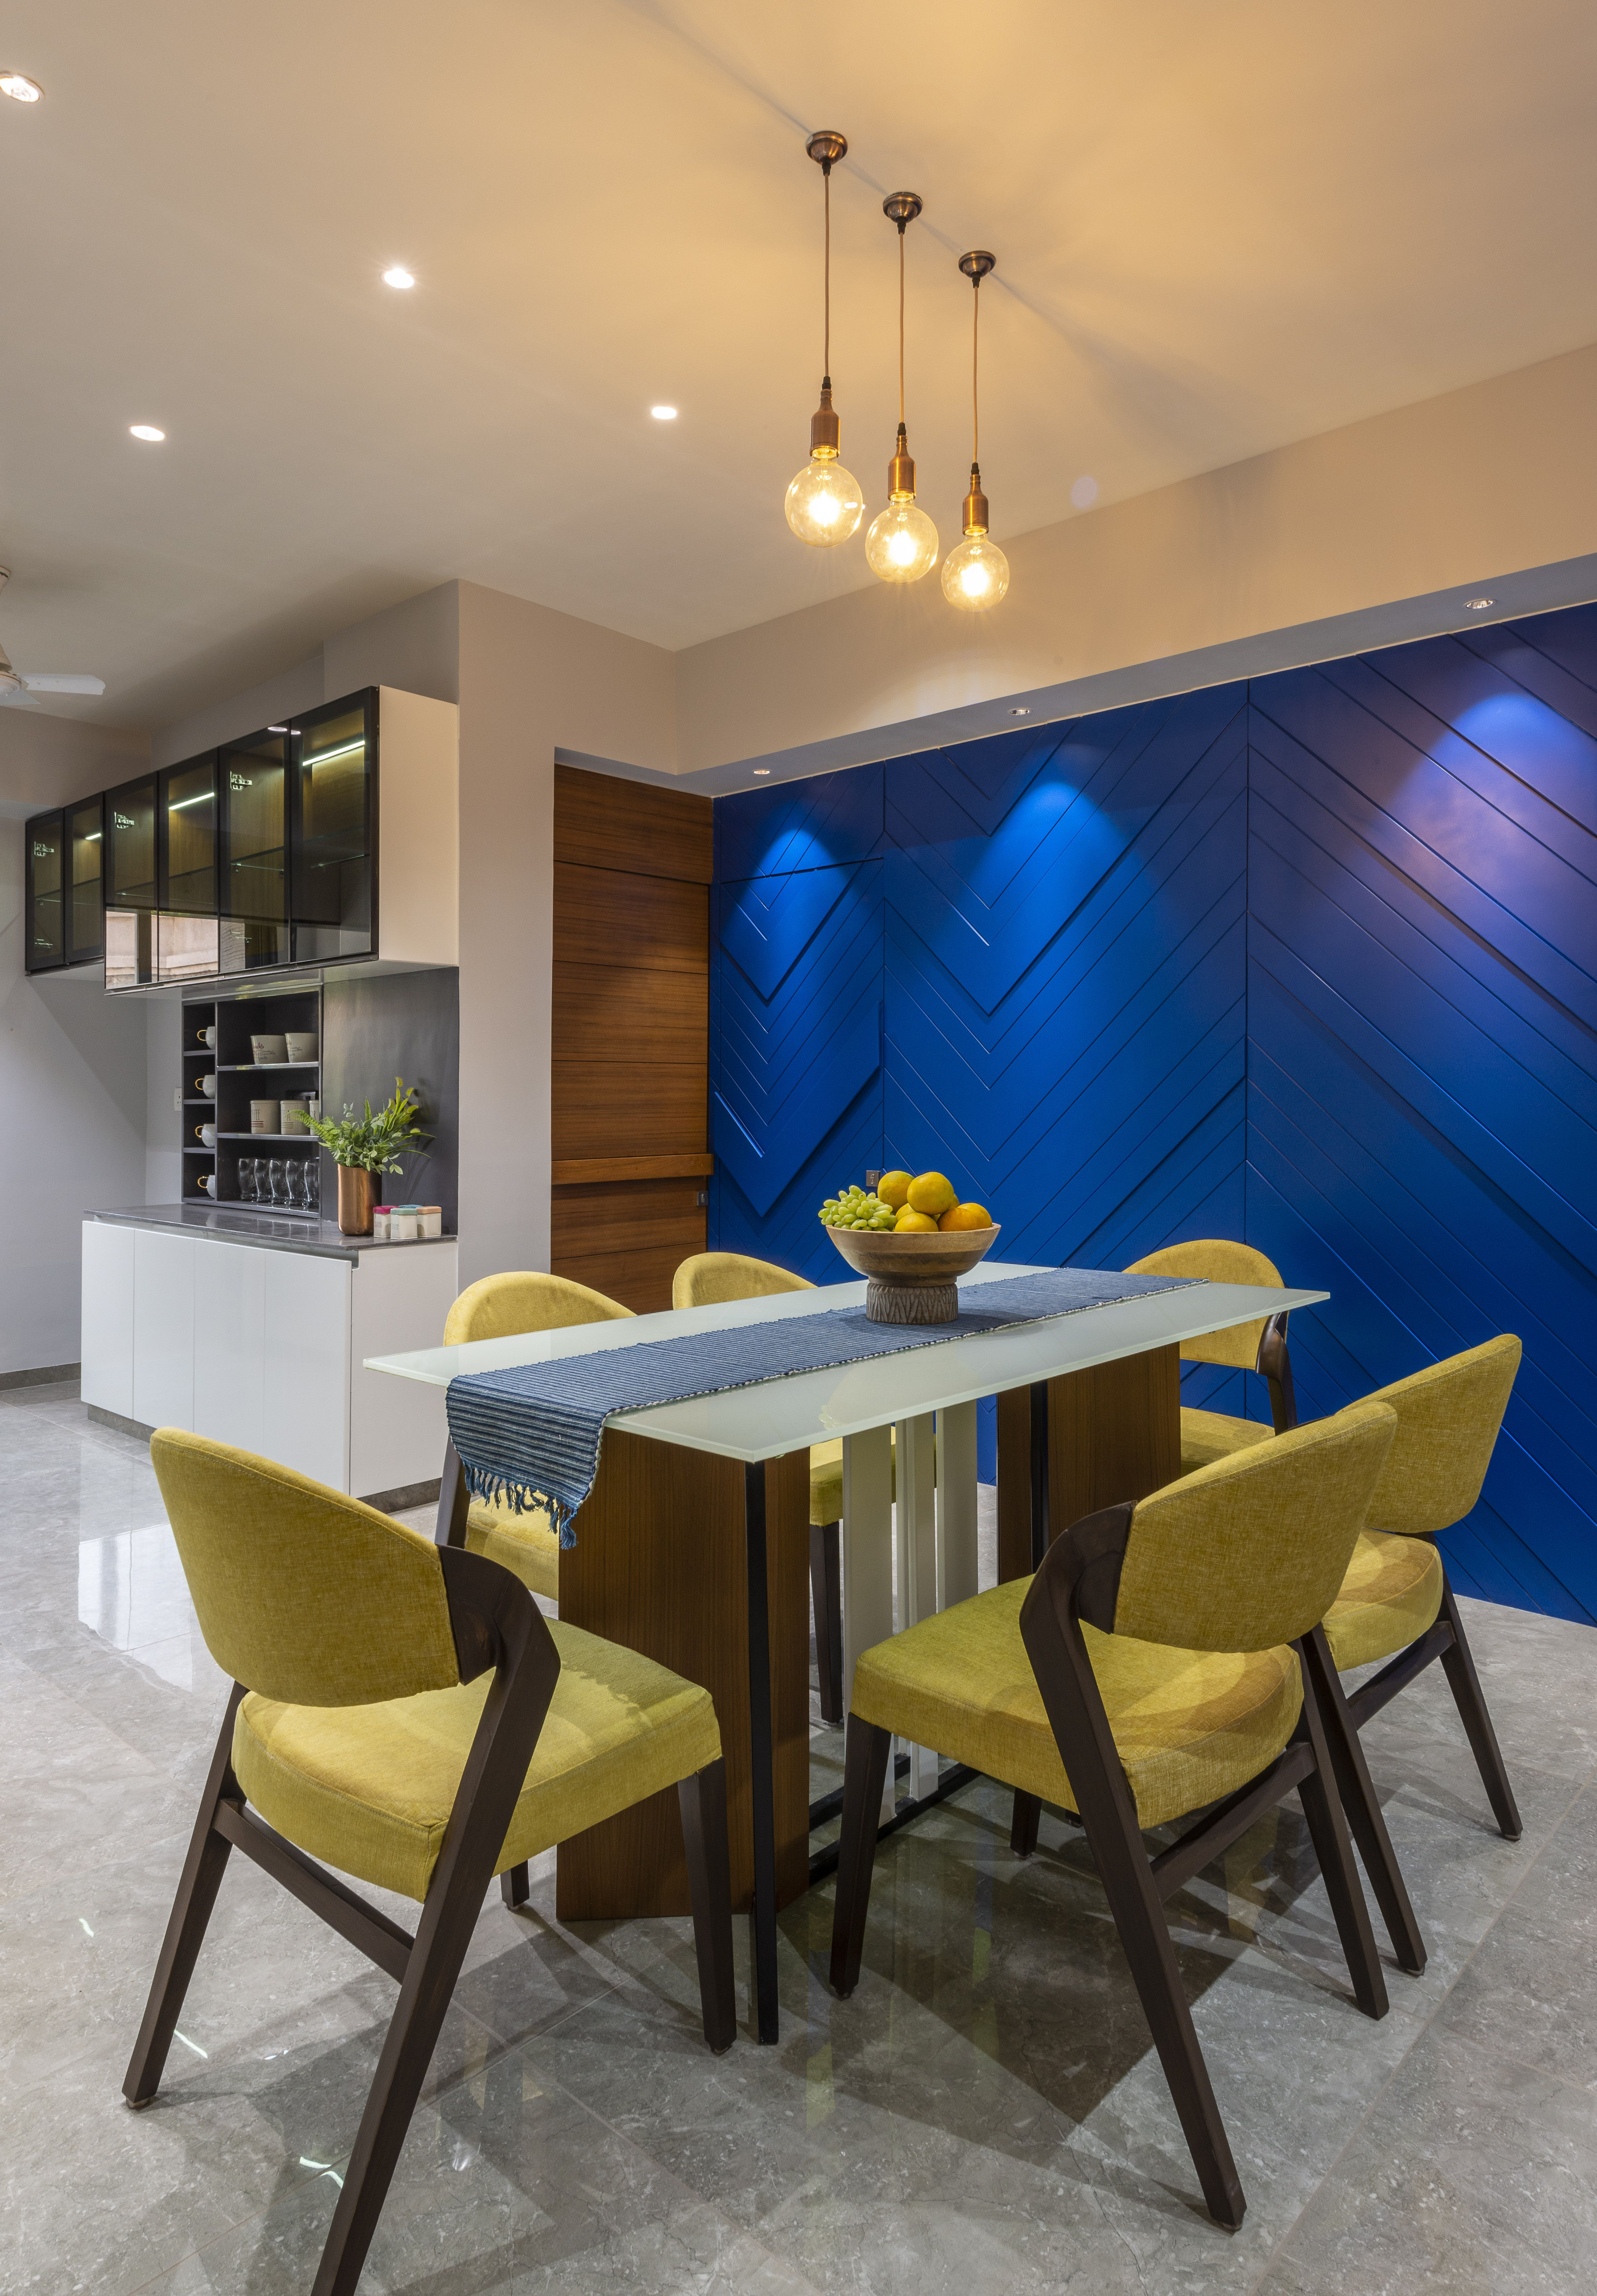 A 1 120 Sq Ft Ahmedabad Apartment With A Bold Blue